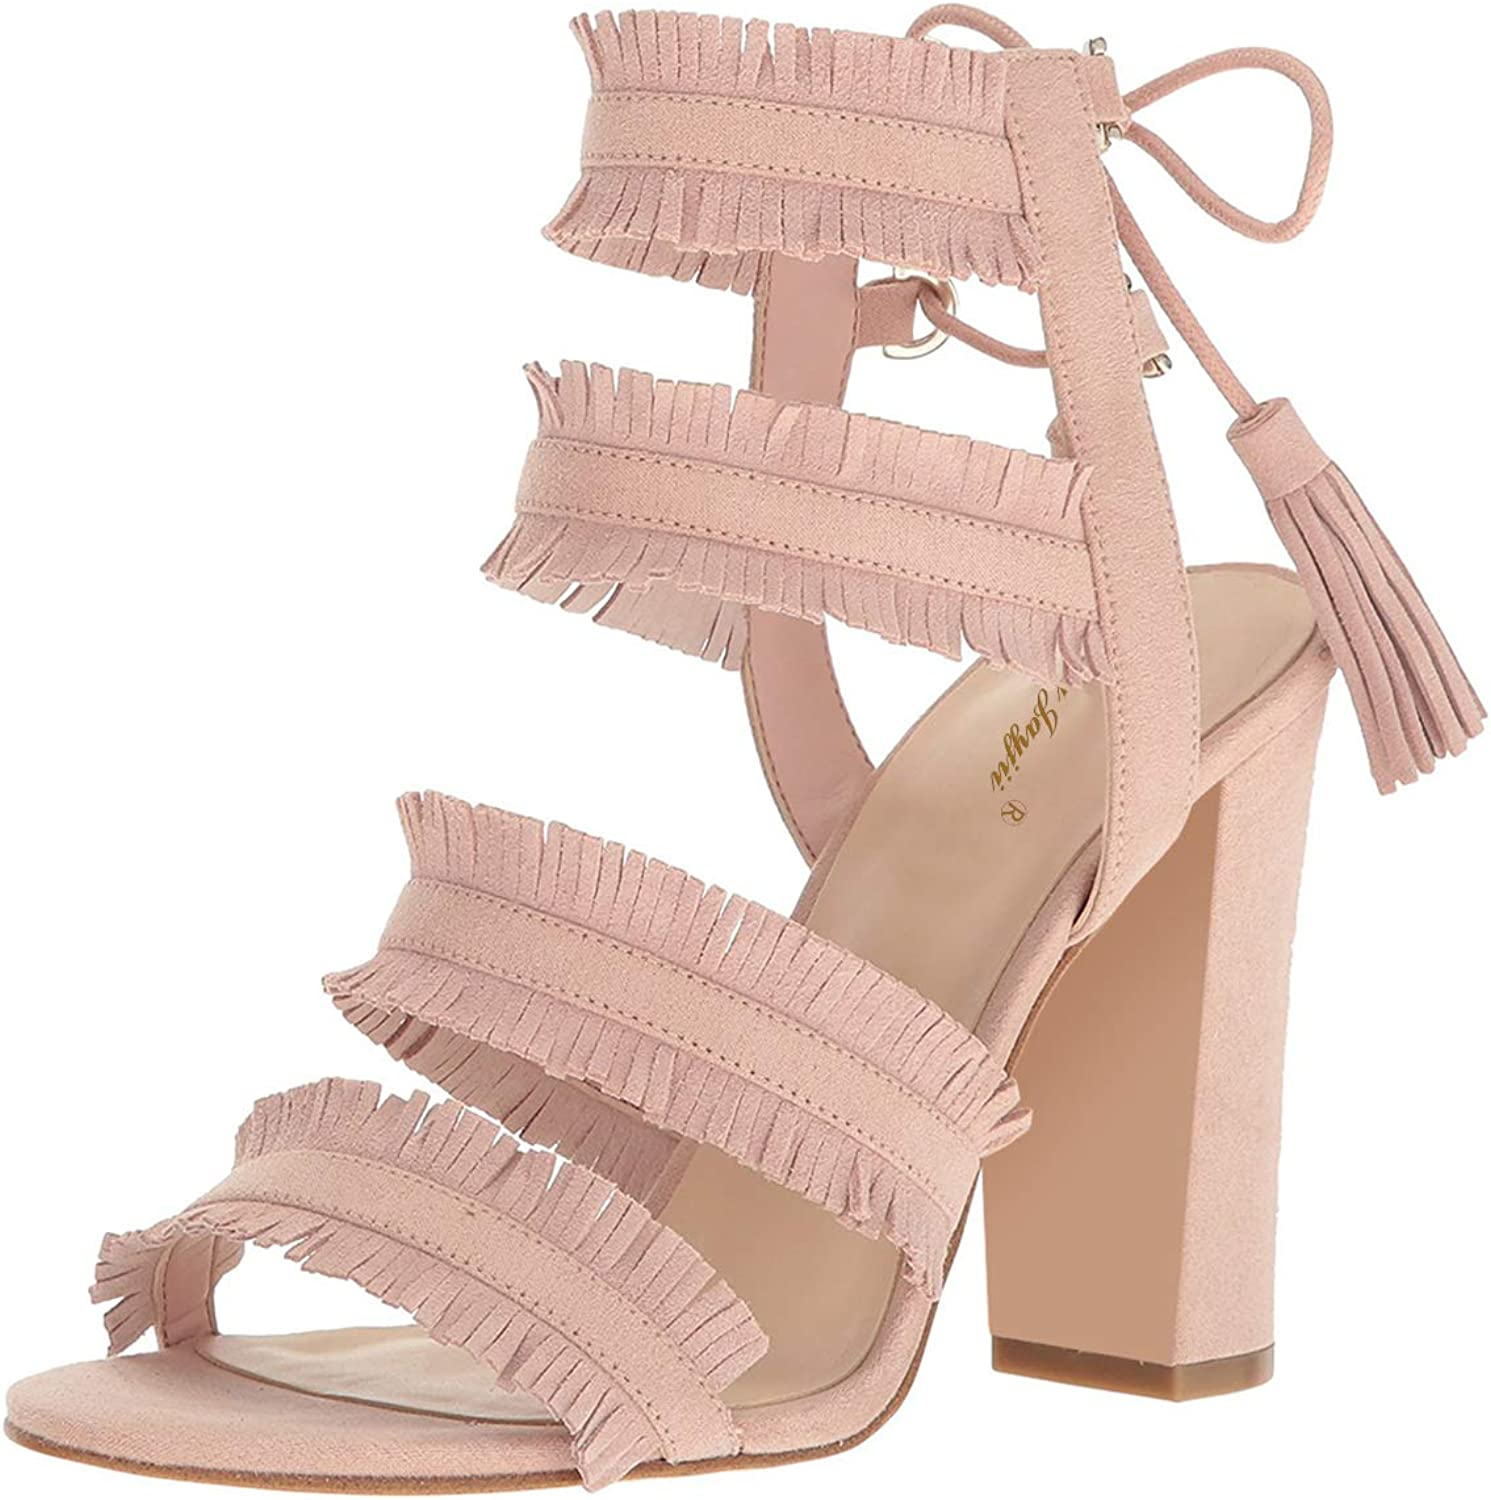 NJ Women Open Toe Chunky High Heel Strappy Dress Sandals Tassels Slingback Lace Up Party Prom Pumps